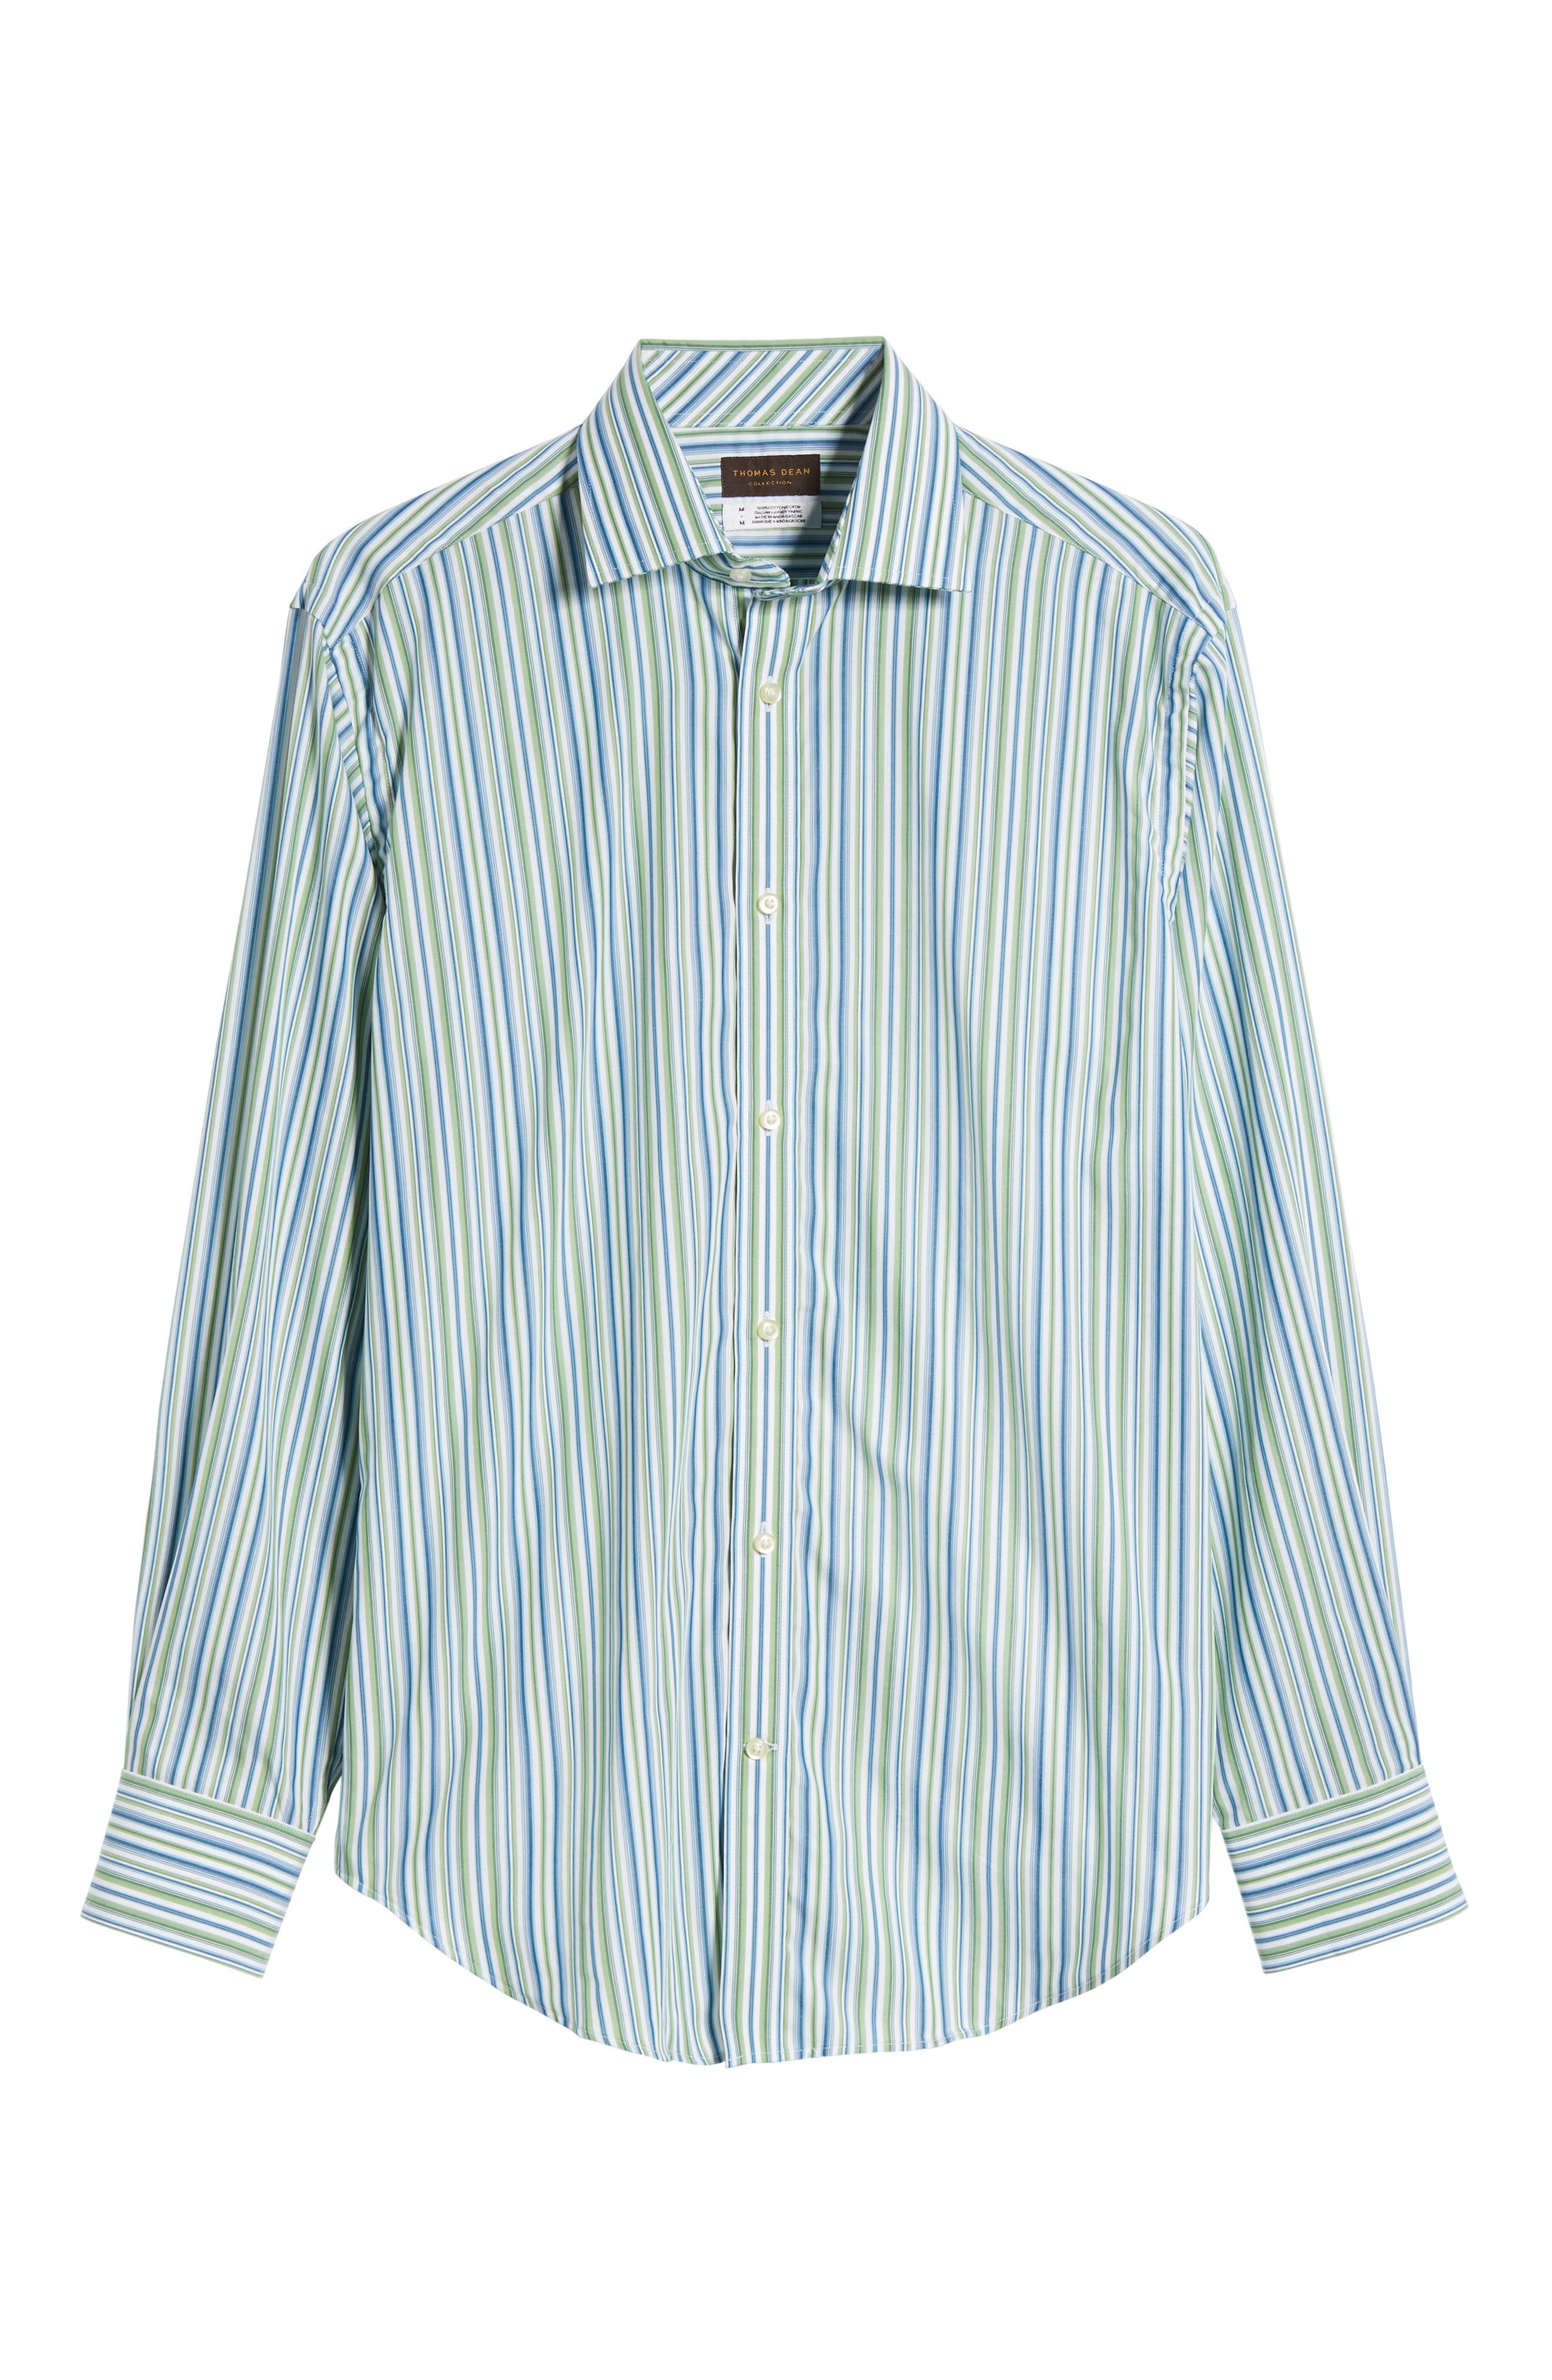 Regular Fit Stripe Sport Shirt,                             Alternate thumbnail 6, color,                             Green